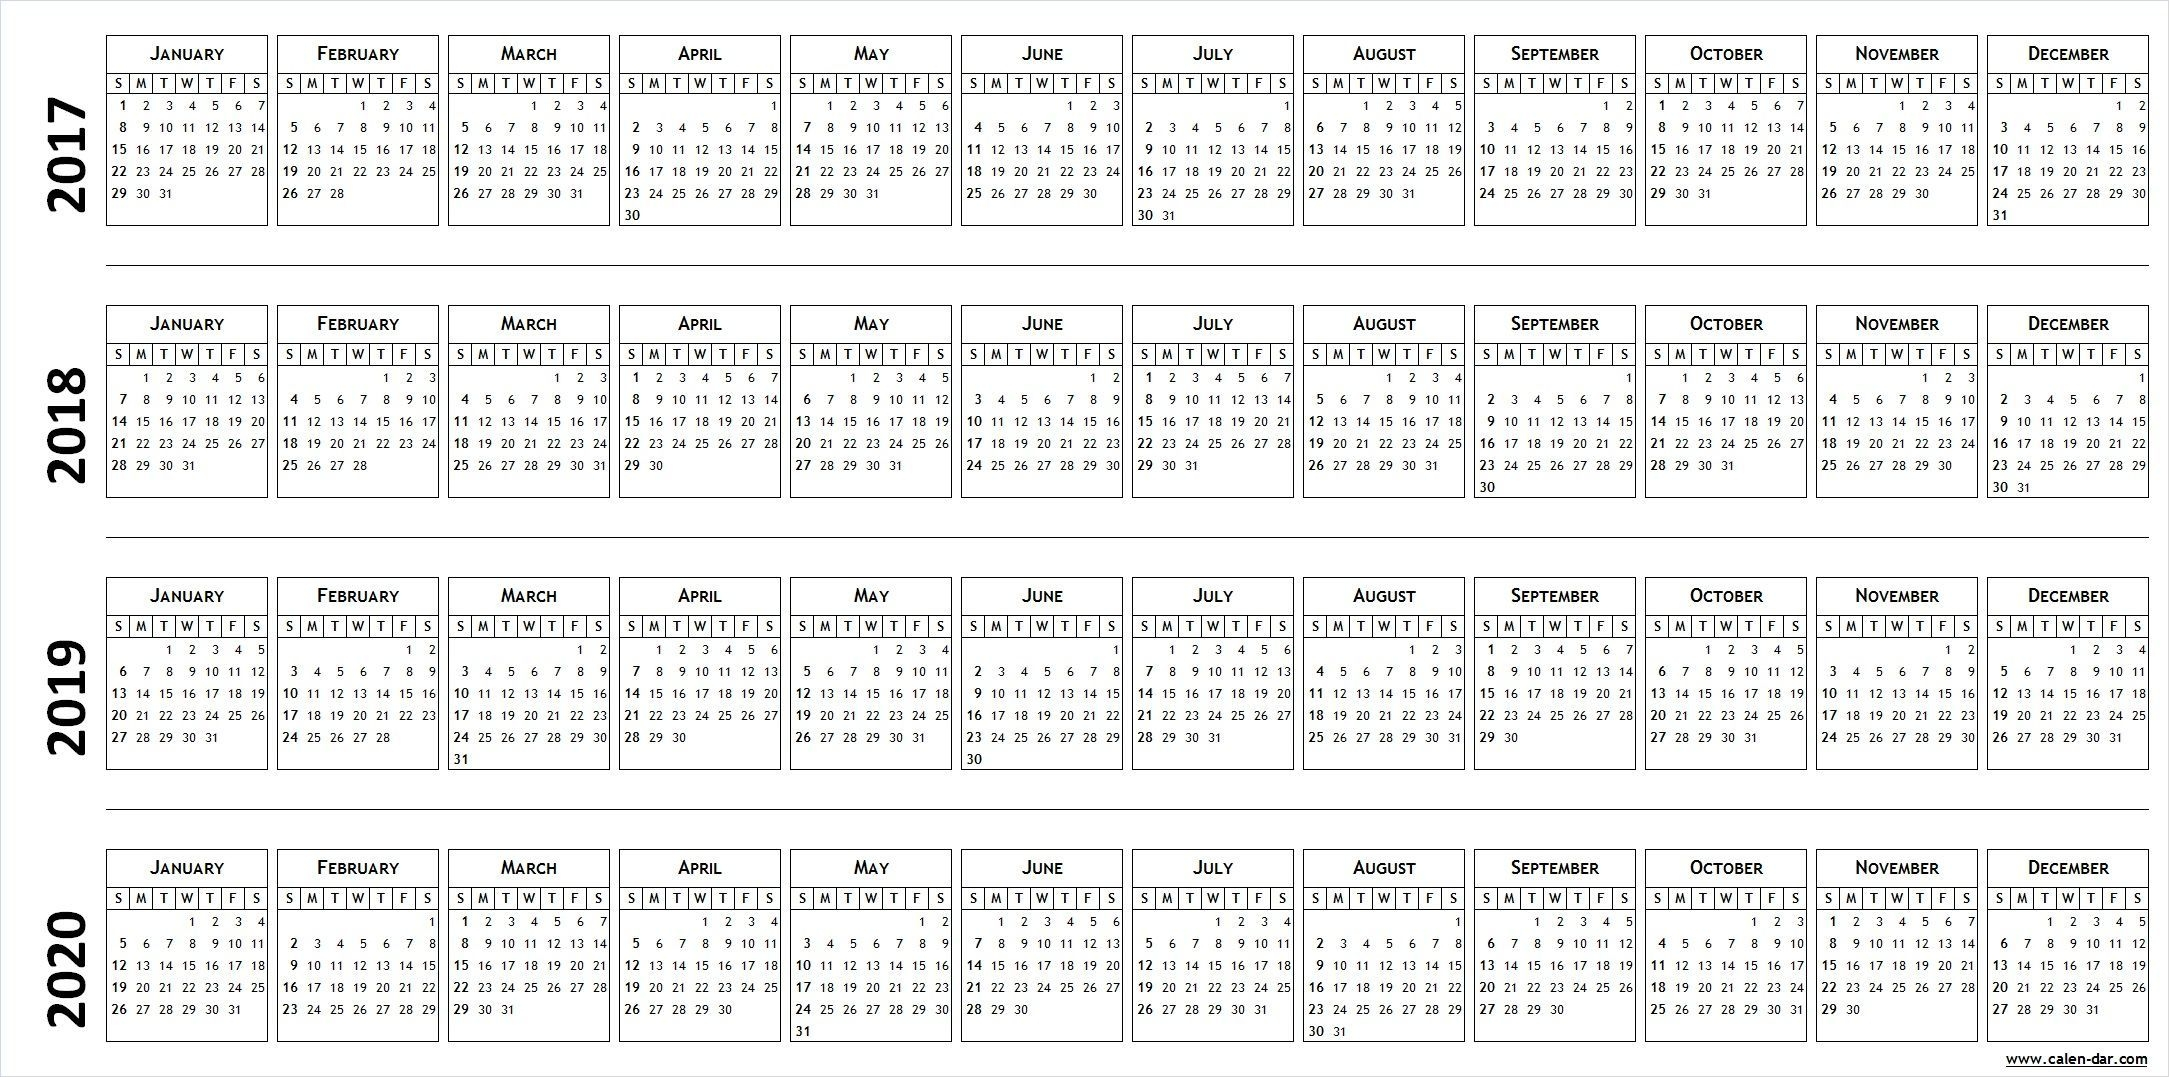 Printable 2017 2018 2019 2020 Calendar Template (With Images